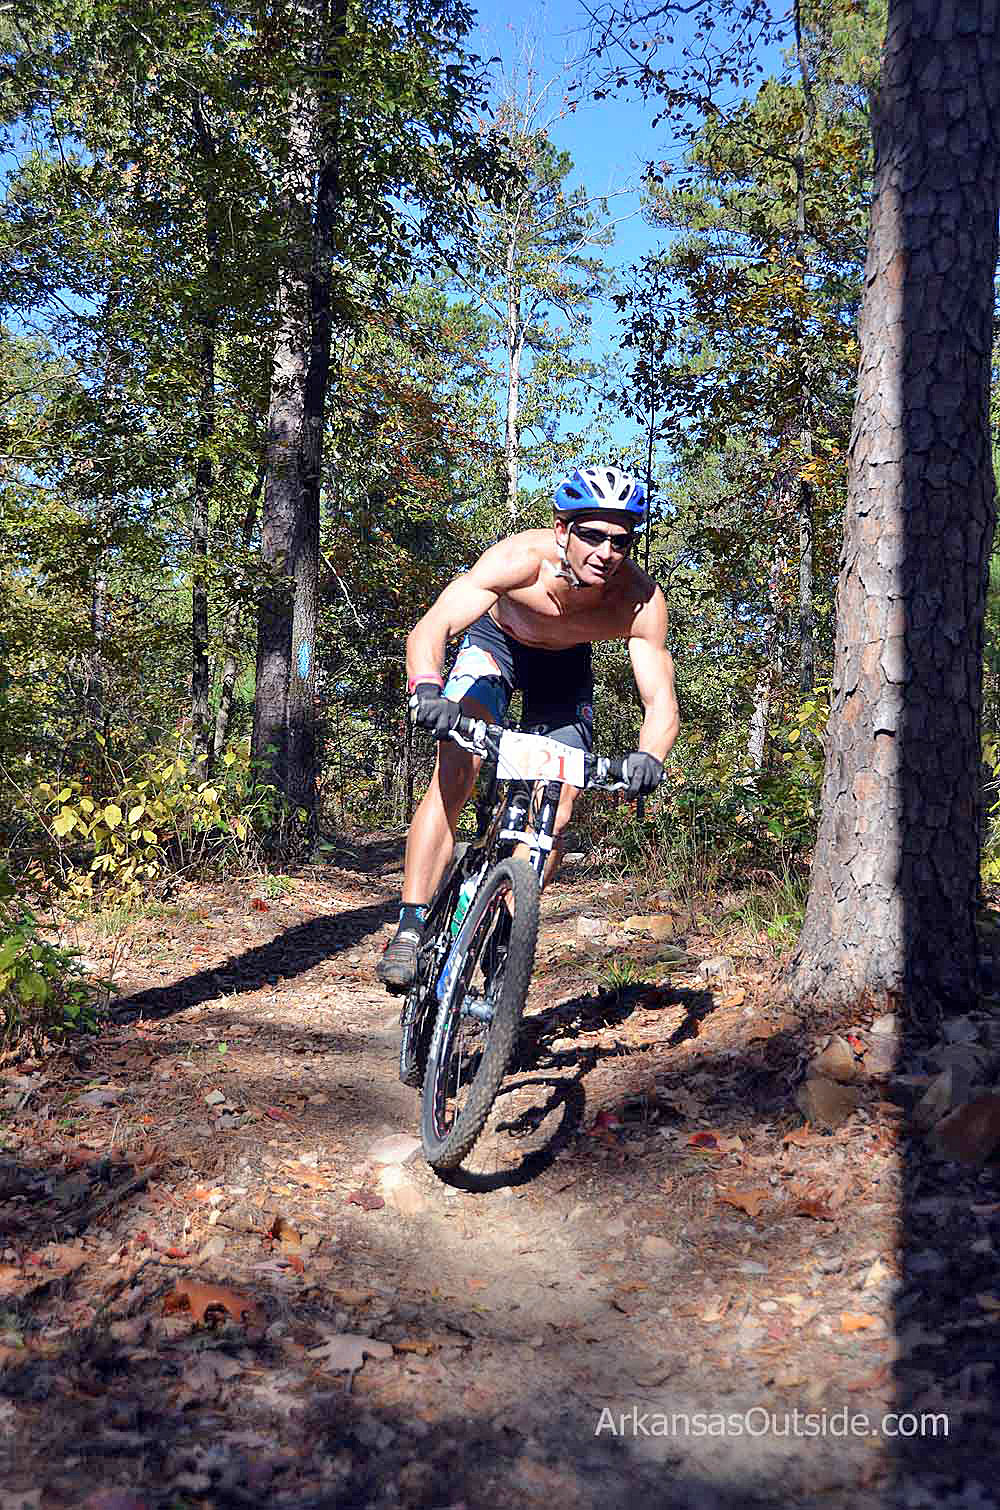 In the middle of the 34 mile mountain biking section of the Iron Mountain XTERRA Epic.